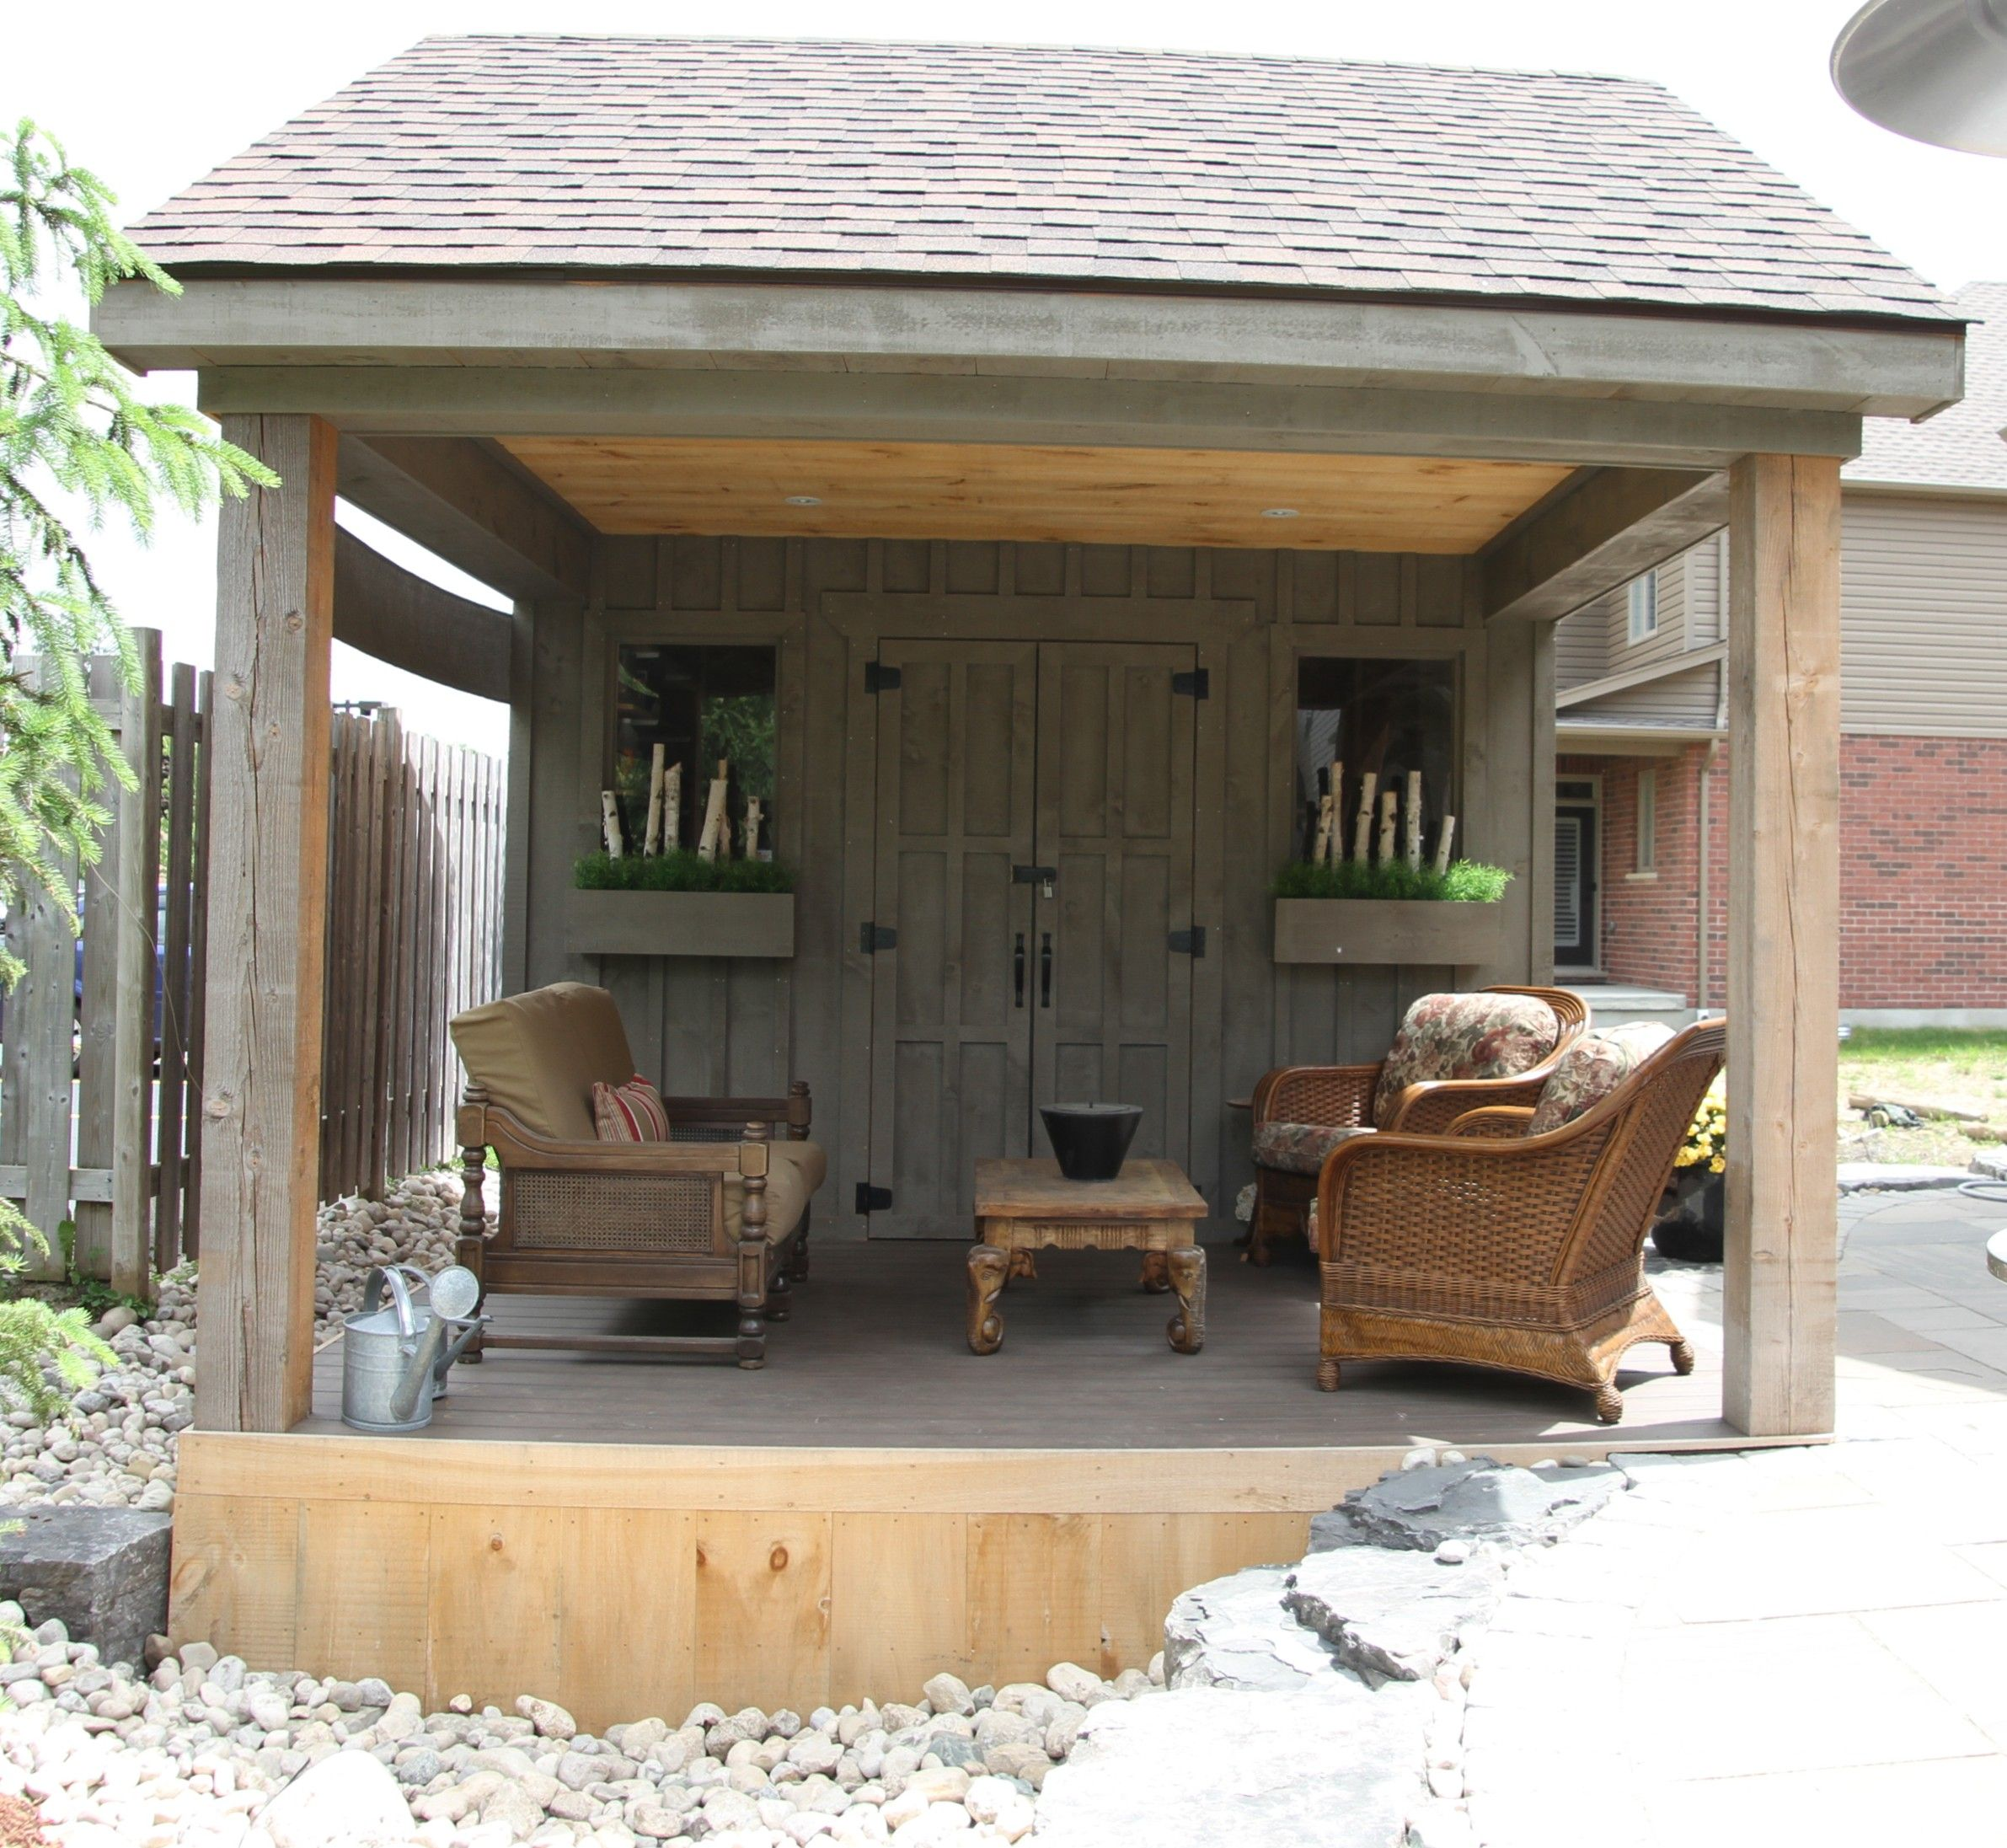 Choosing The Perfect Garden Shed: Our Cabana Is Finally Finished